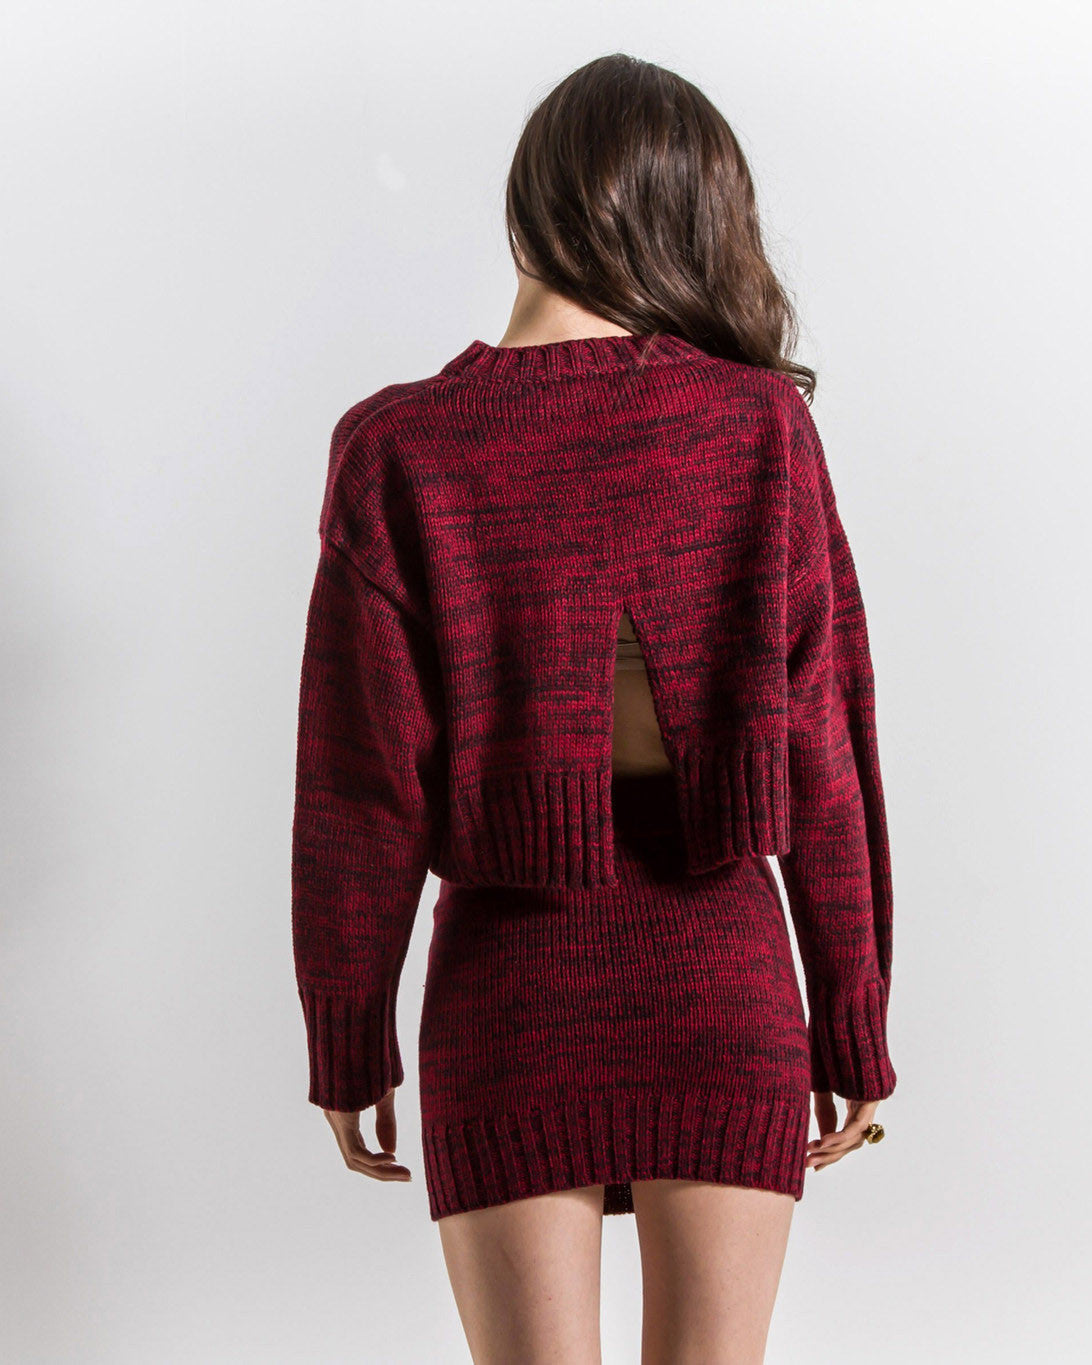 Lila Cropped Back Slit Knit Sweater (Red)